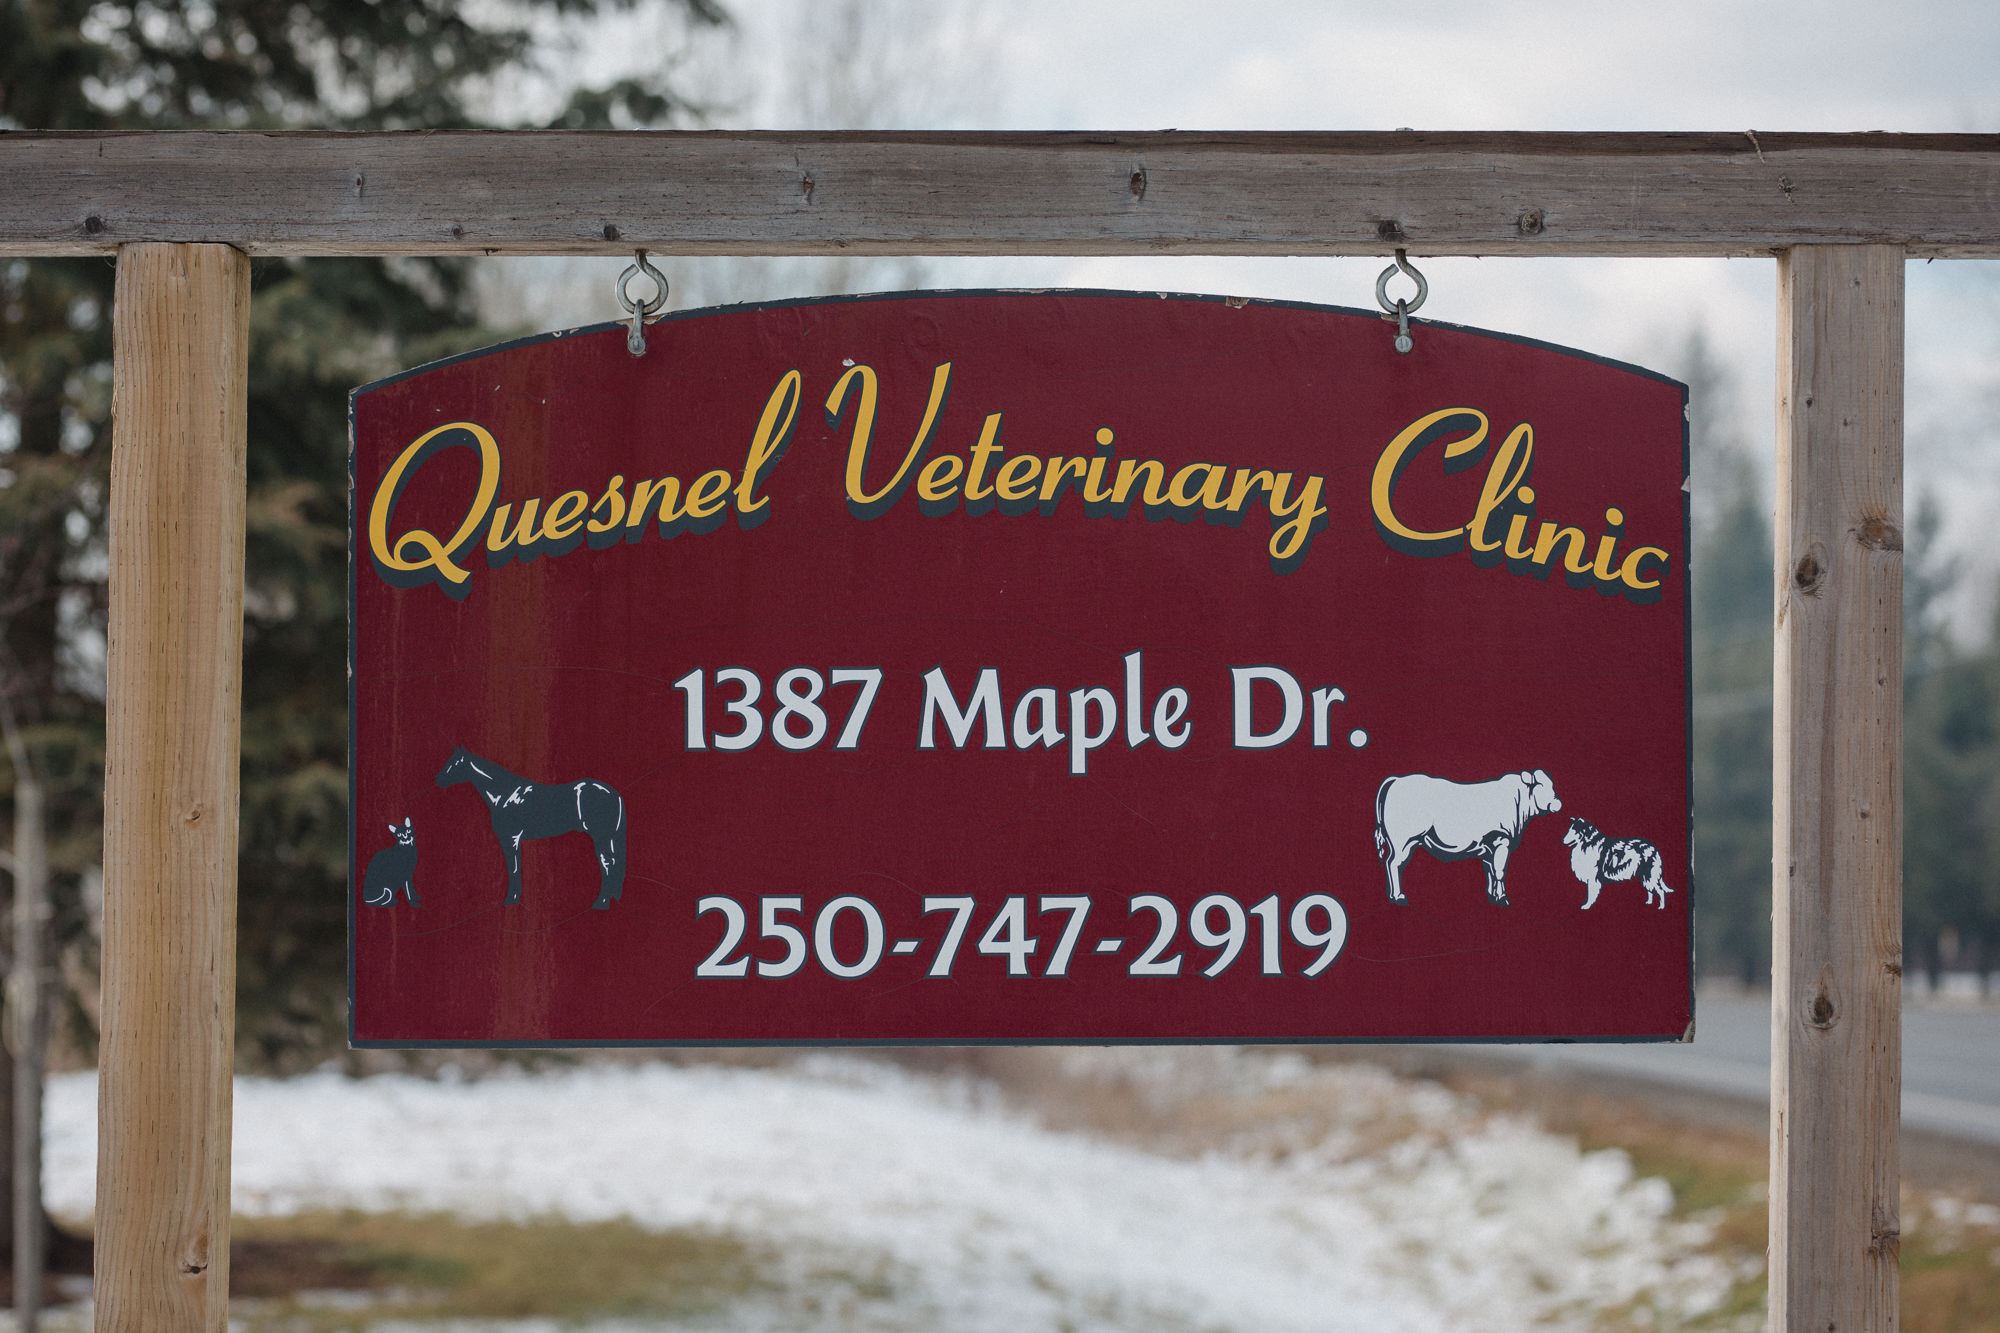 quesnel-verterinary-clinic-qvc-quesnel-vets-large-small-animal-clinic-quesnel-bc (32 of 43).jpg